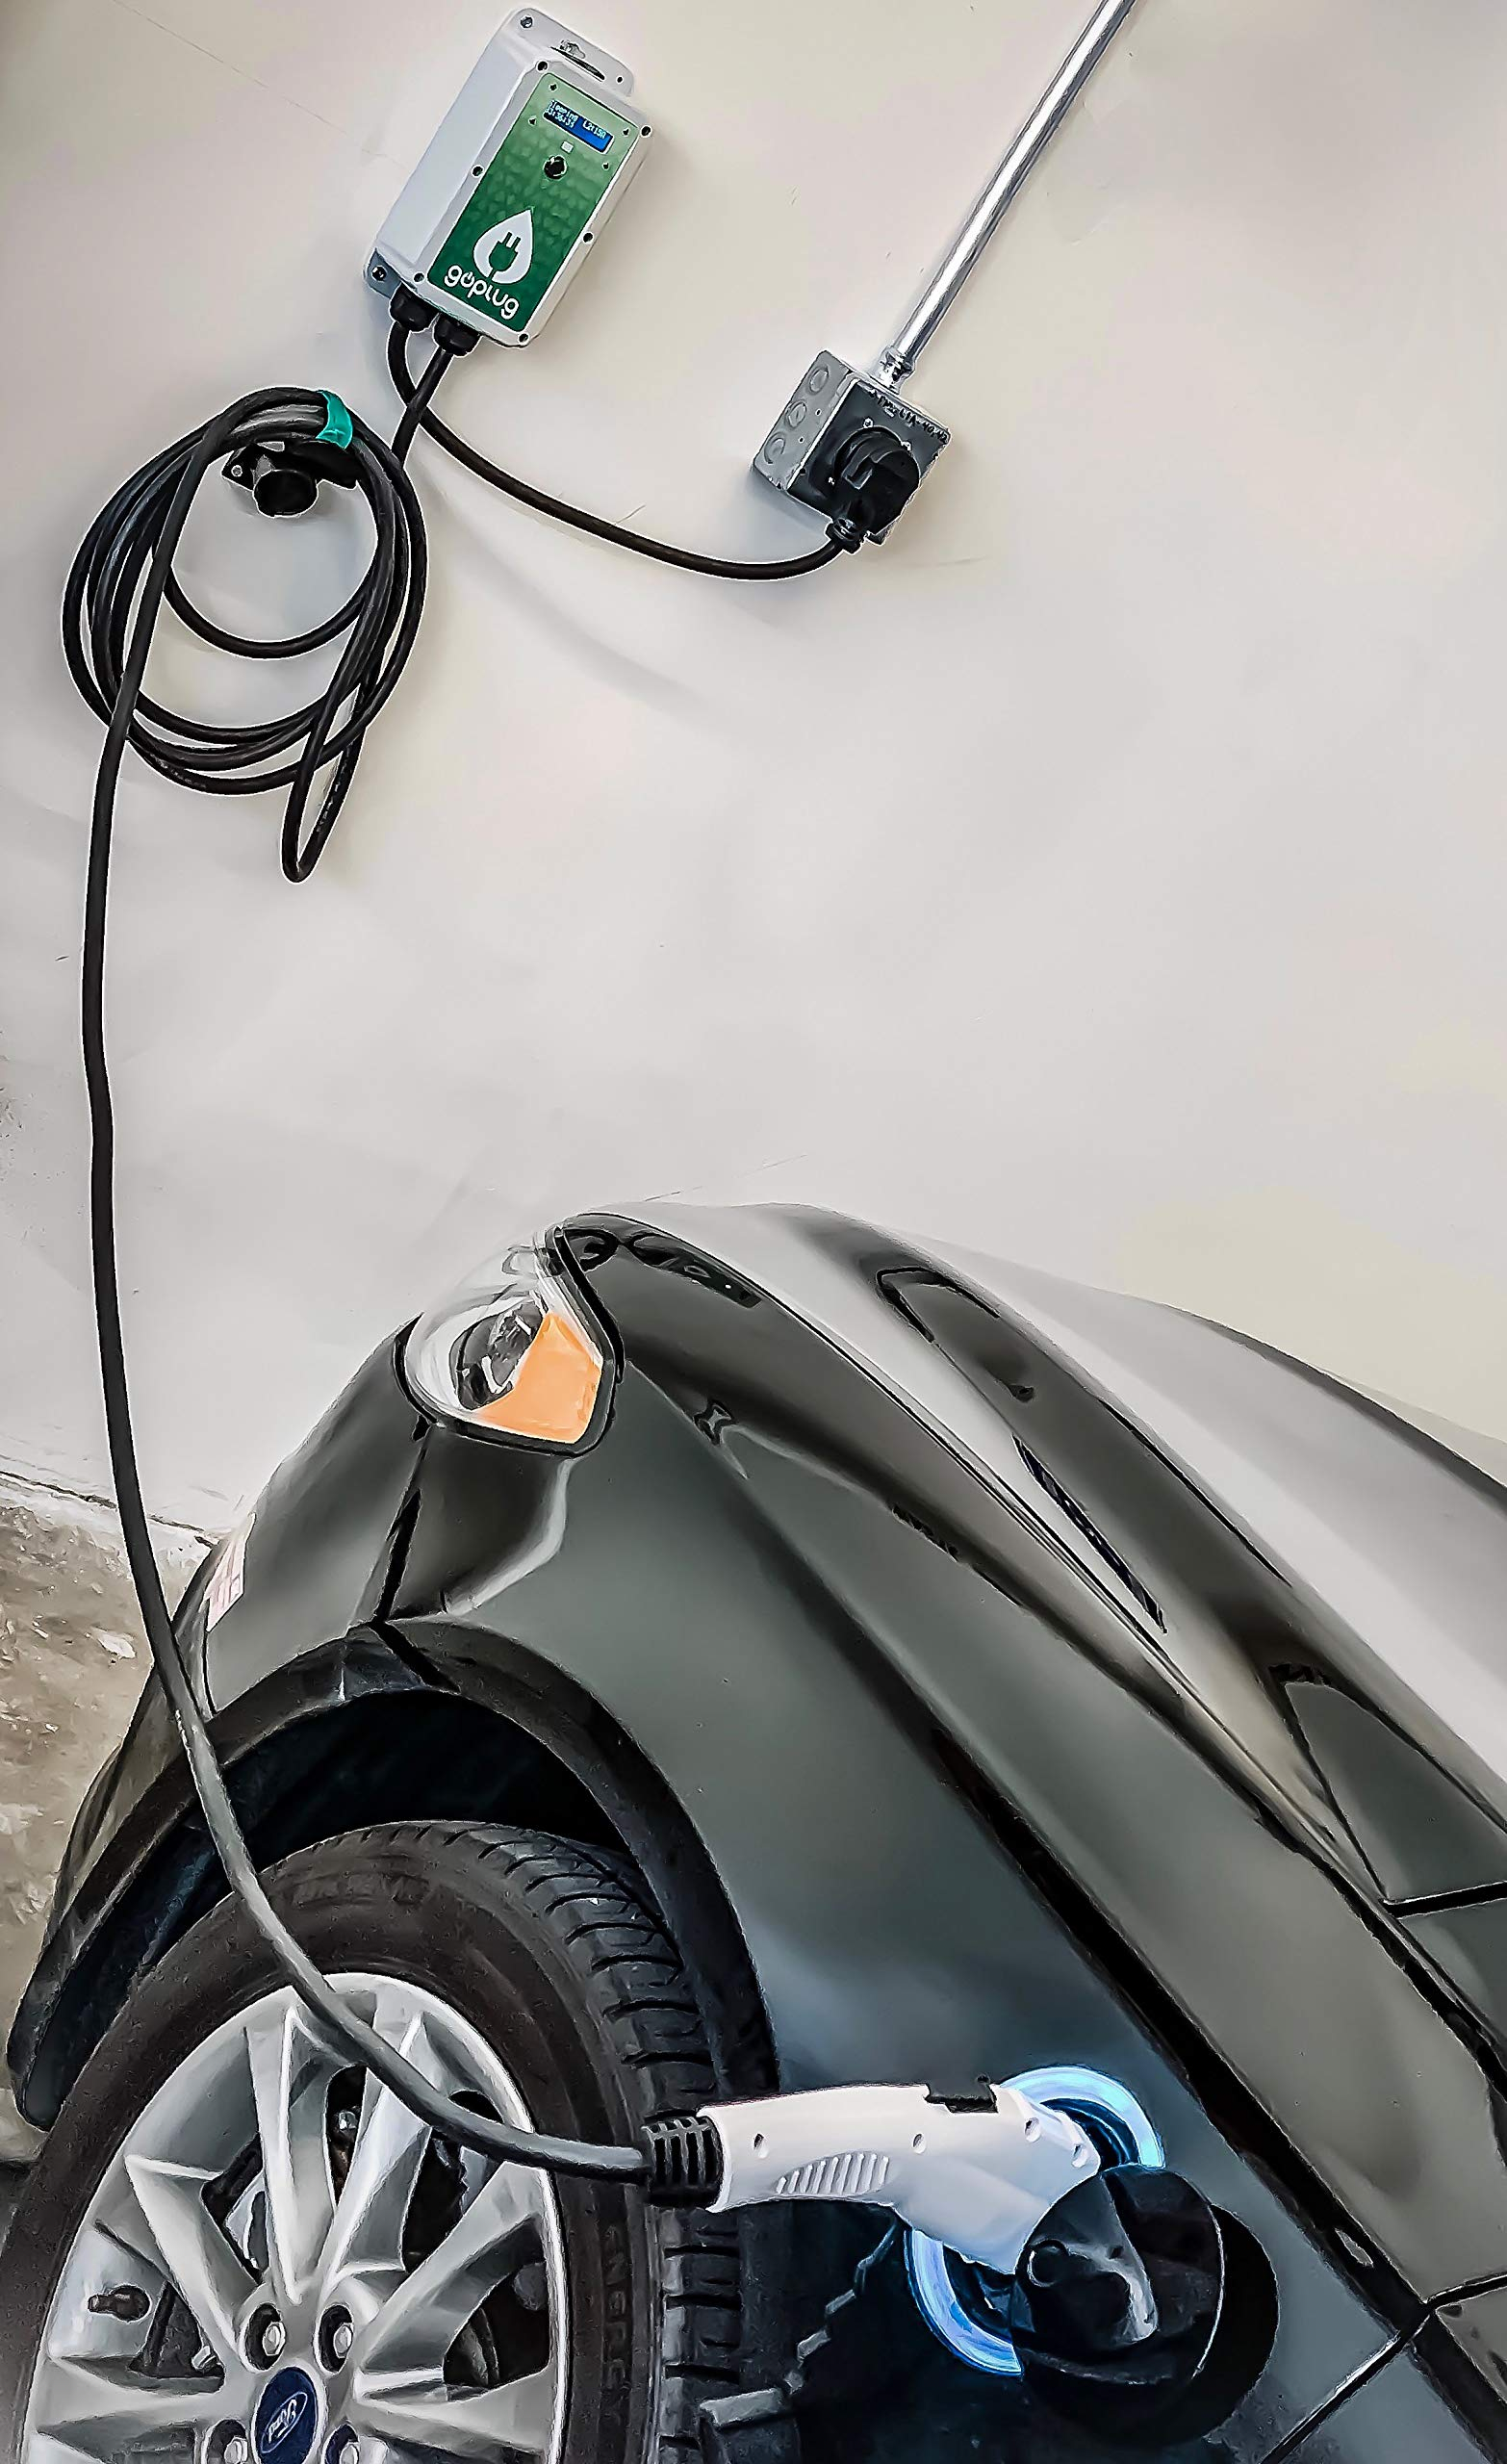 GoPlug Pro 40 Amp EV Charger: Compact Light Outdoor/Indoor Multi-Voltage 120-240V Level 2 Electric Vehicle Charging Station With Ultraflexible 25-Foot EVSE J1772 Cable, Color Display, WiFi, NEMA 14-50 by GoPlug EV Charger (Image #7)